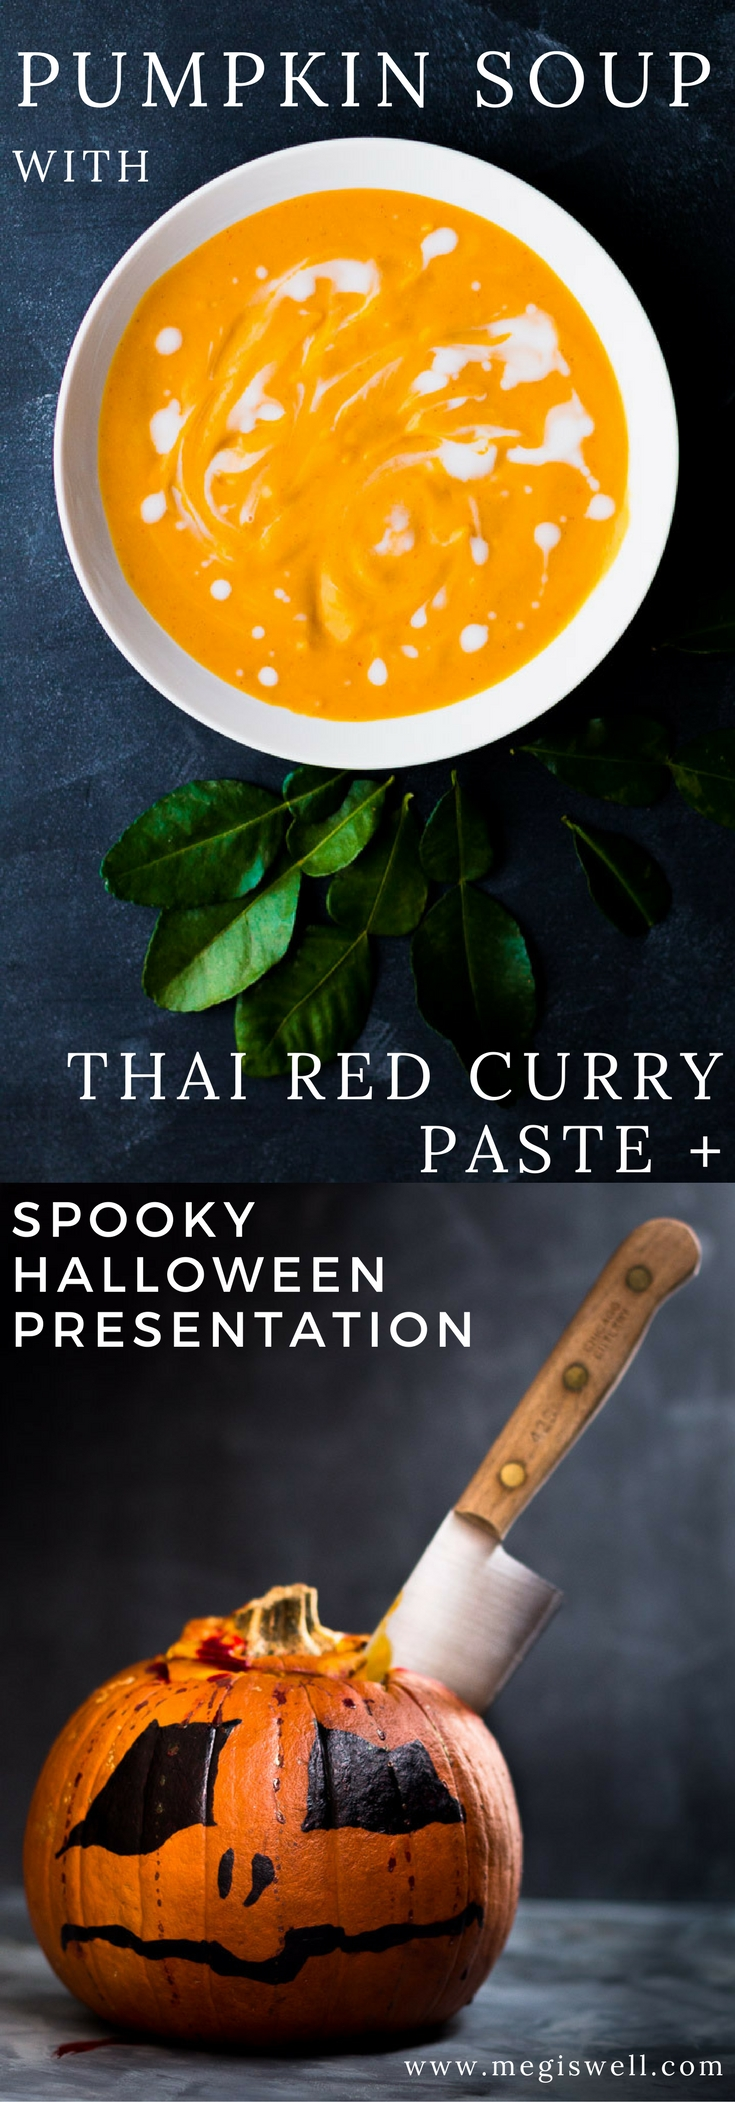 This Pumpkin Soup with Thai Red Curry Paste is spicy with a subtle sweetness emphasized by Thai lime leaves and creamy coconut milk. | Spooky Halloween Presentation | #Halloween #pumpkin | www.megiswell.com